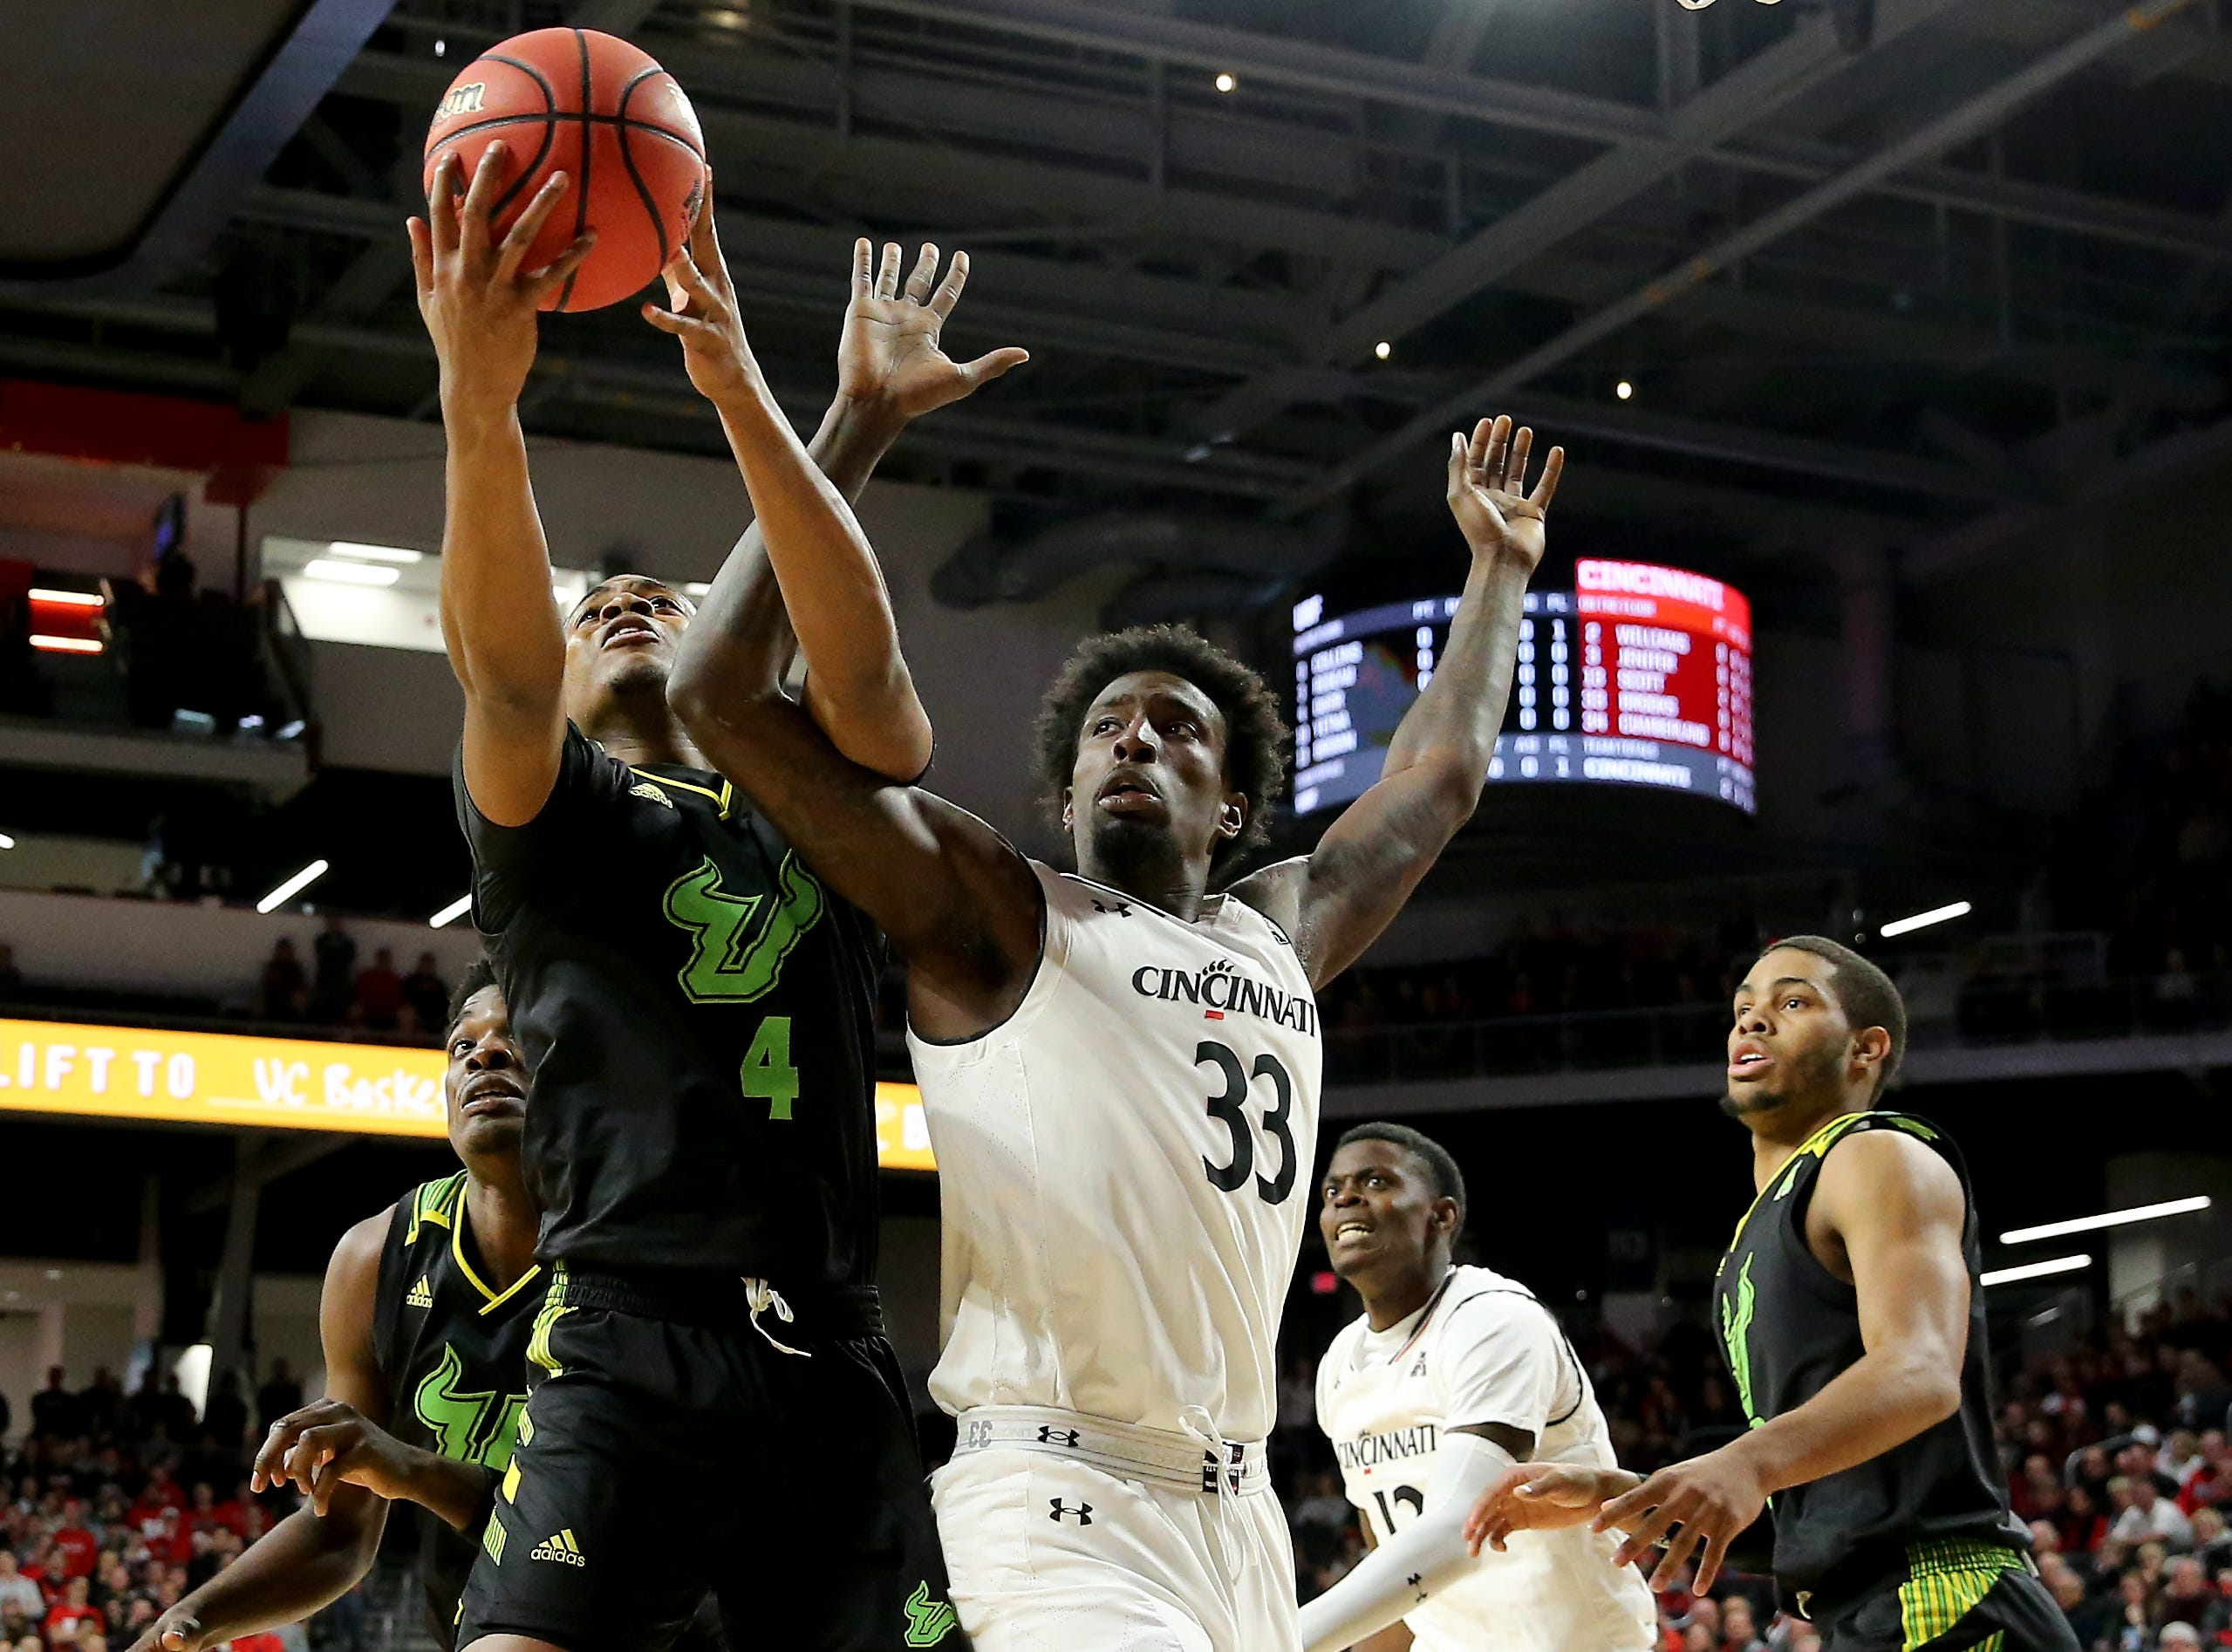 South Florida Bulls forward Michael Durr (4) and Cincinnati Bearcats center Nysier Brooks (33) battle for a rebound in the first half of an NCAA college basketball game, Tuesday, Jan. 15, 2019, at Fifth Third Arena in Cincinnati.